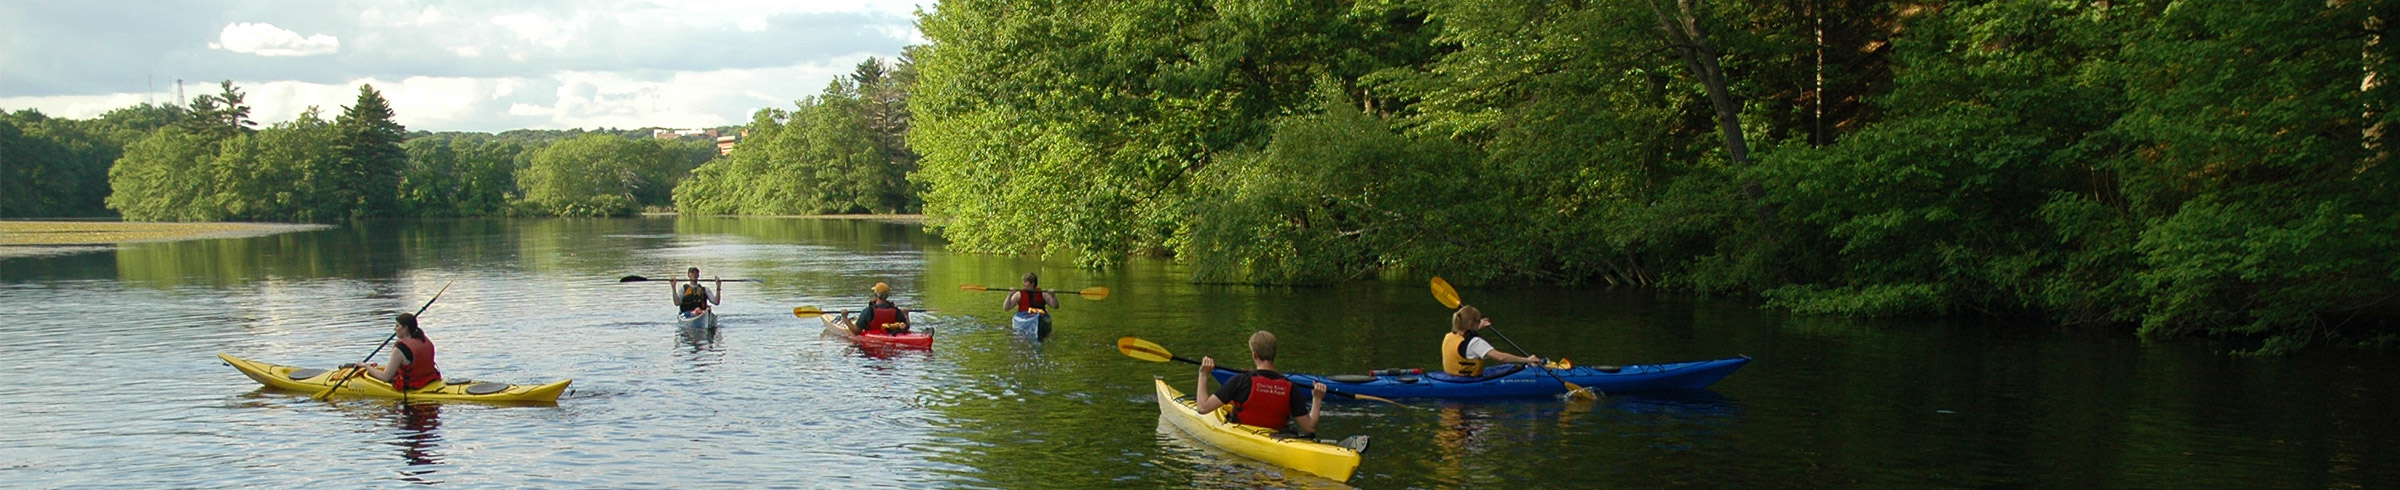 How to Choose a Kayak > Paddle Boston